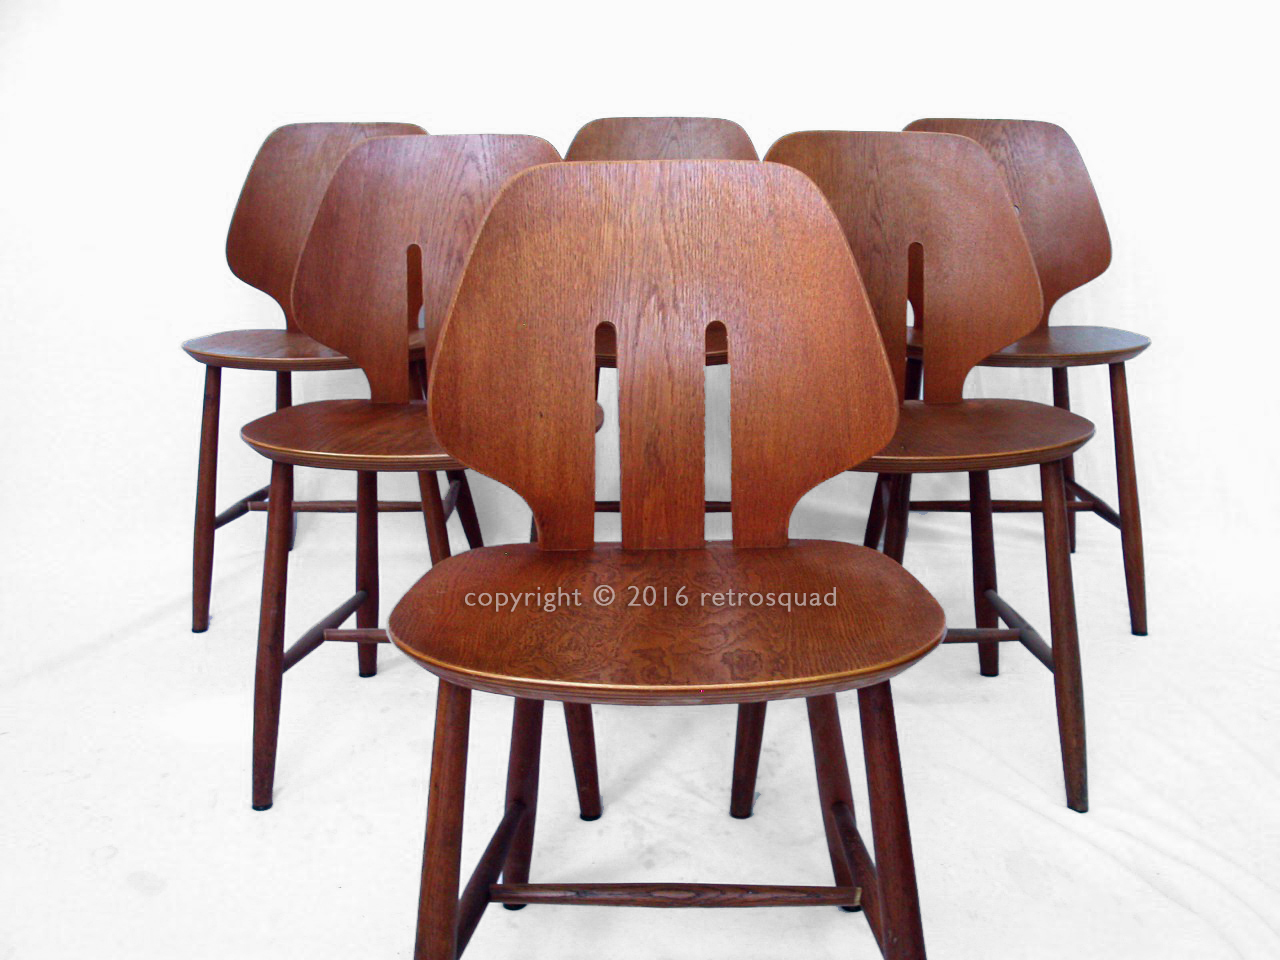 6 Modern Dining Chairs By Ejvind A. Johanss For FDB Mobler Vintage 1960 03